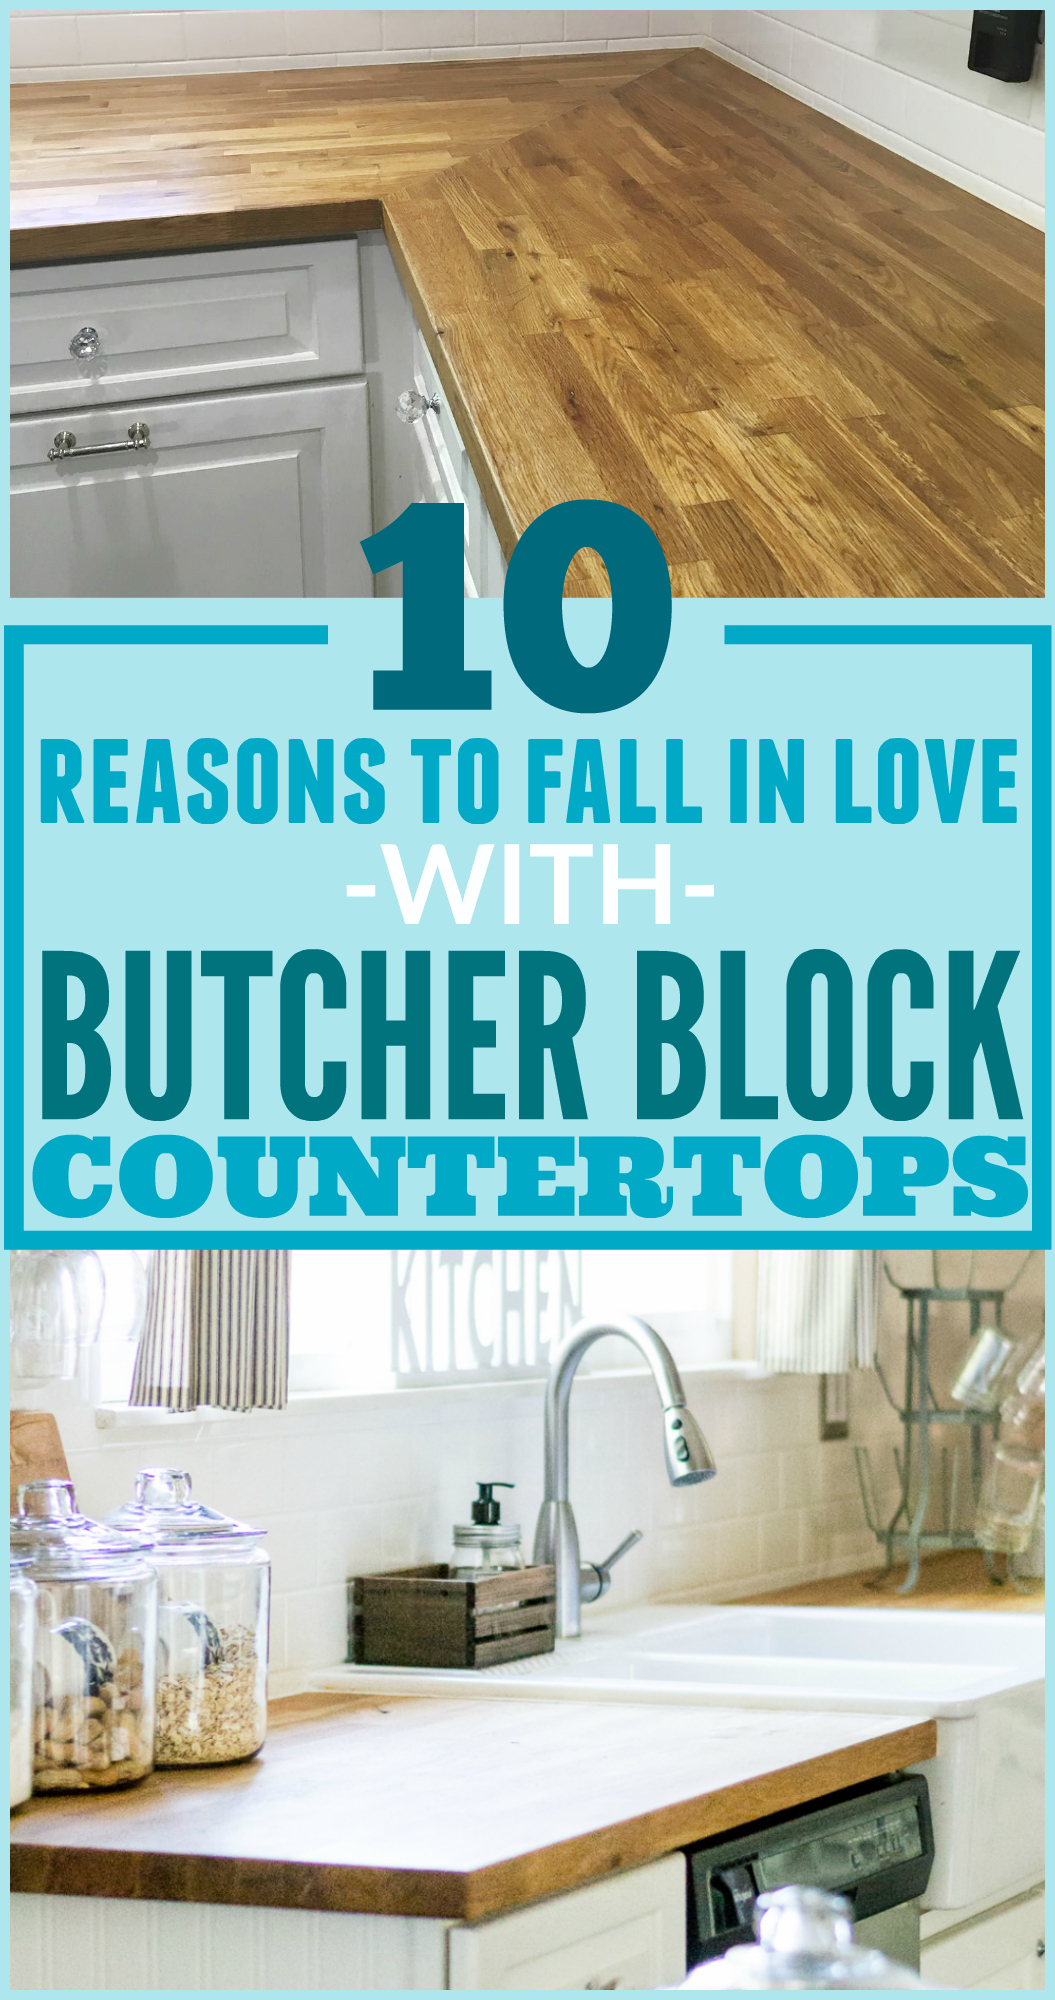 10-reasons-to-fall-in-love-with-butcher-block-counters